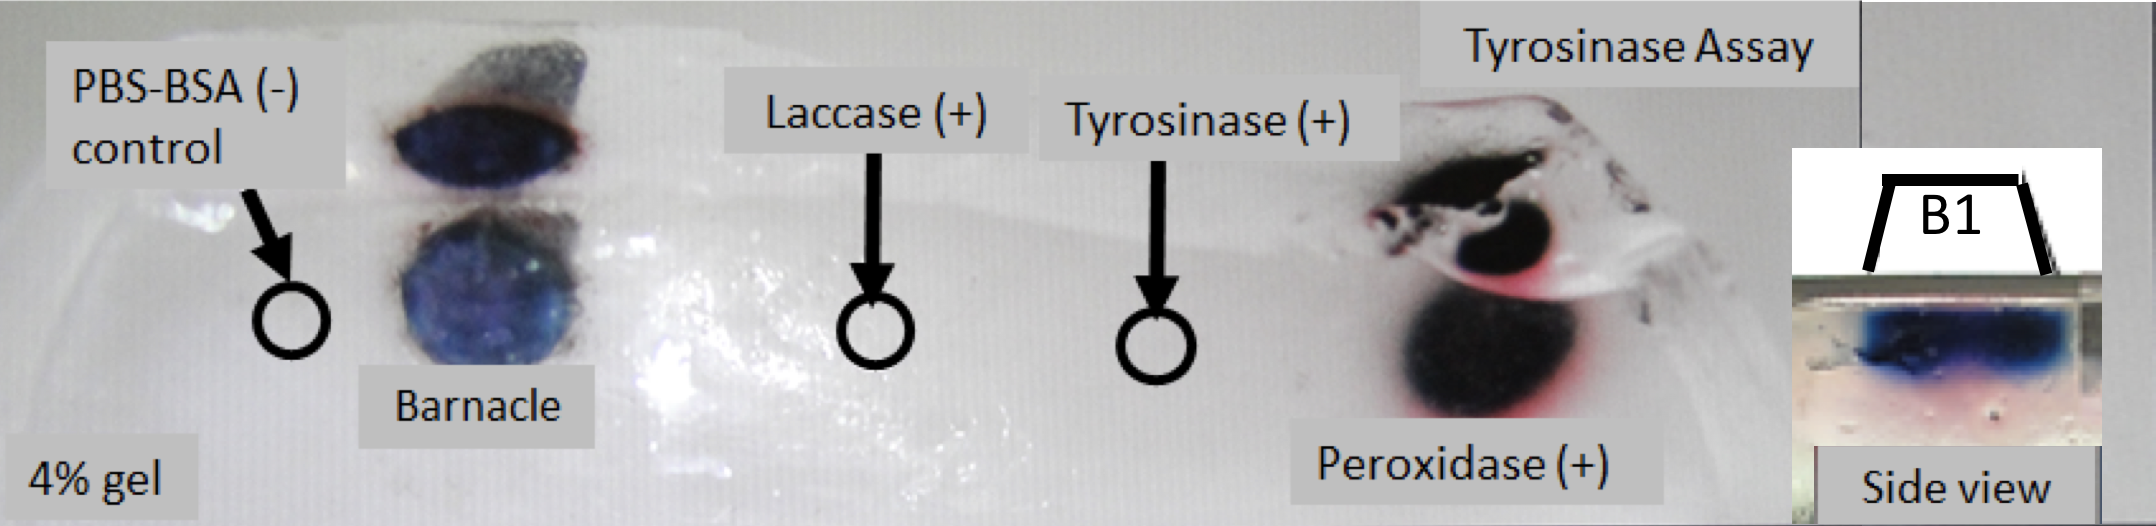 Figure 5. Tyrosinase assay, the third step of Rescigno et al.'s colorimetric assay on the 4% polyacrylamide gel. Bottom view of the gel, and the barnacle is shown as the blue circular object at the left. There are four positive and negative control injections. B1 is the side view of the barnacle.